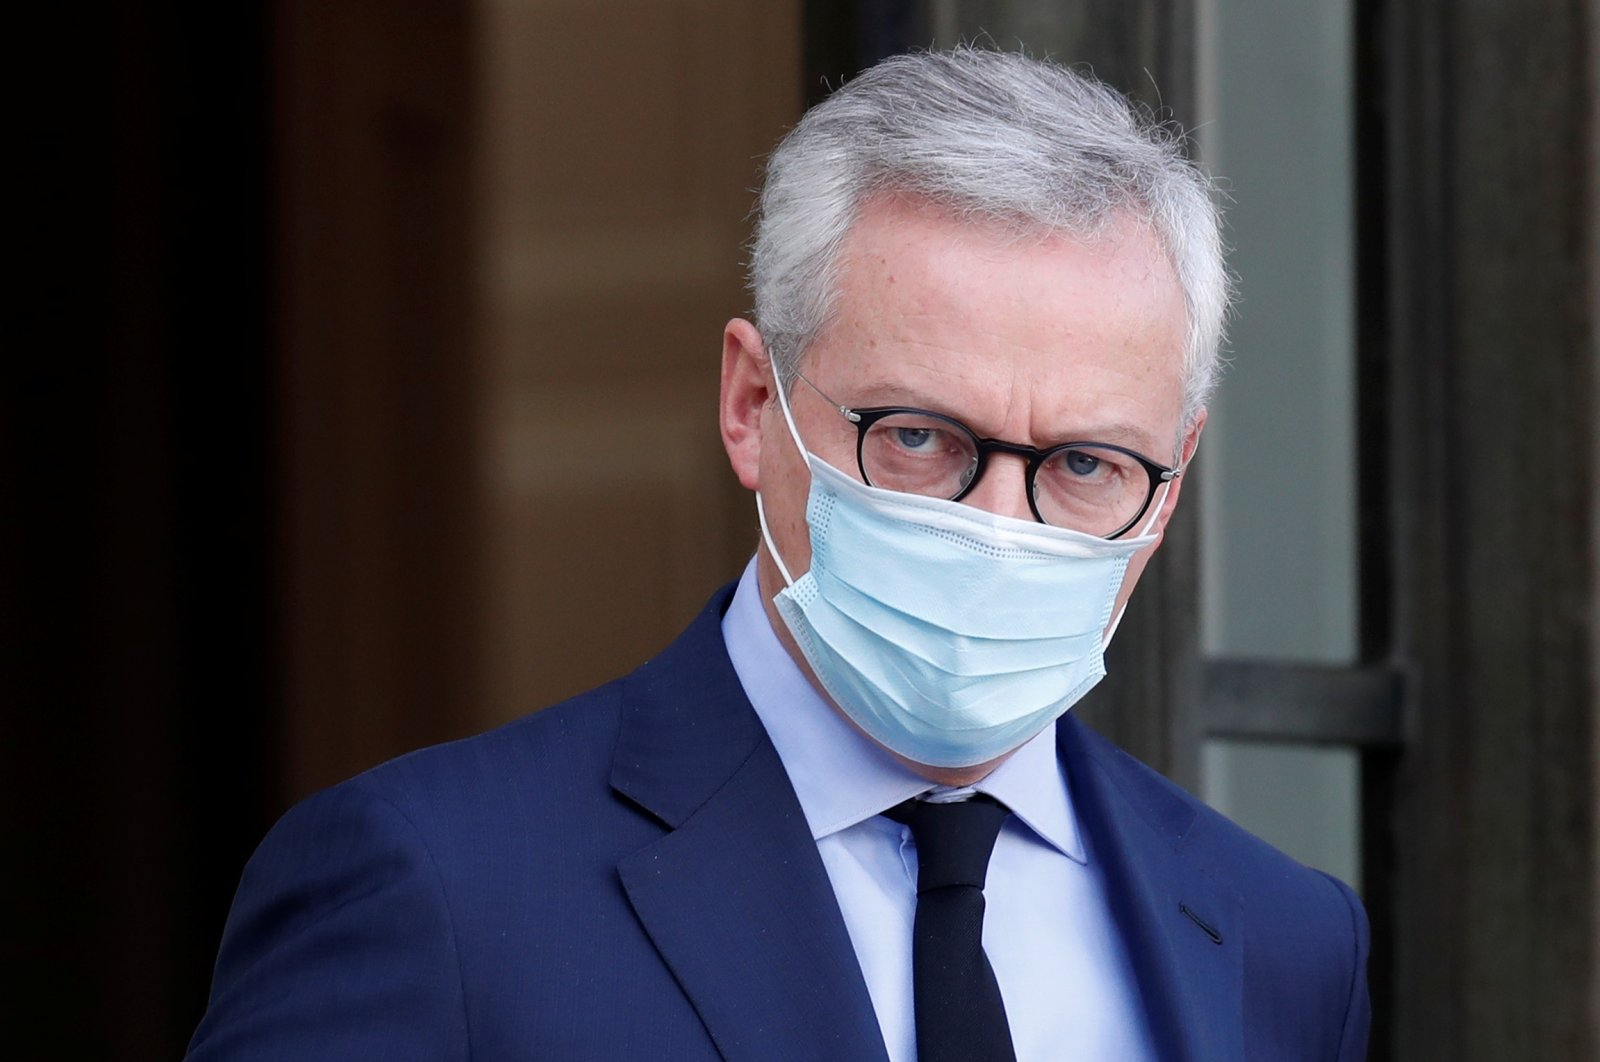 Bruno Le Maire, the French Minister of the Economy, Finance, and Recovery, wearing a protective mask, leaves following the weekly cabinet meeting at the Elysee Palace in Paris, Oct. 21, 2020. (Reuters Photo)